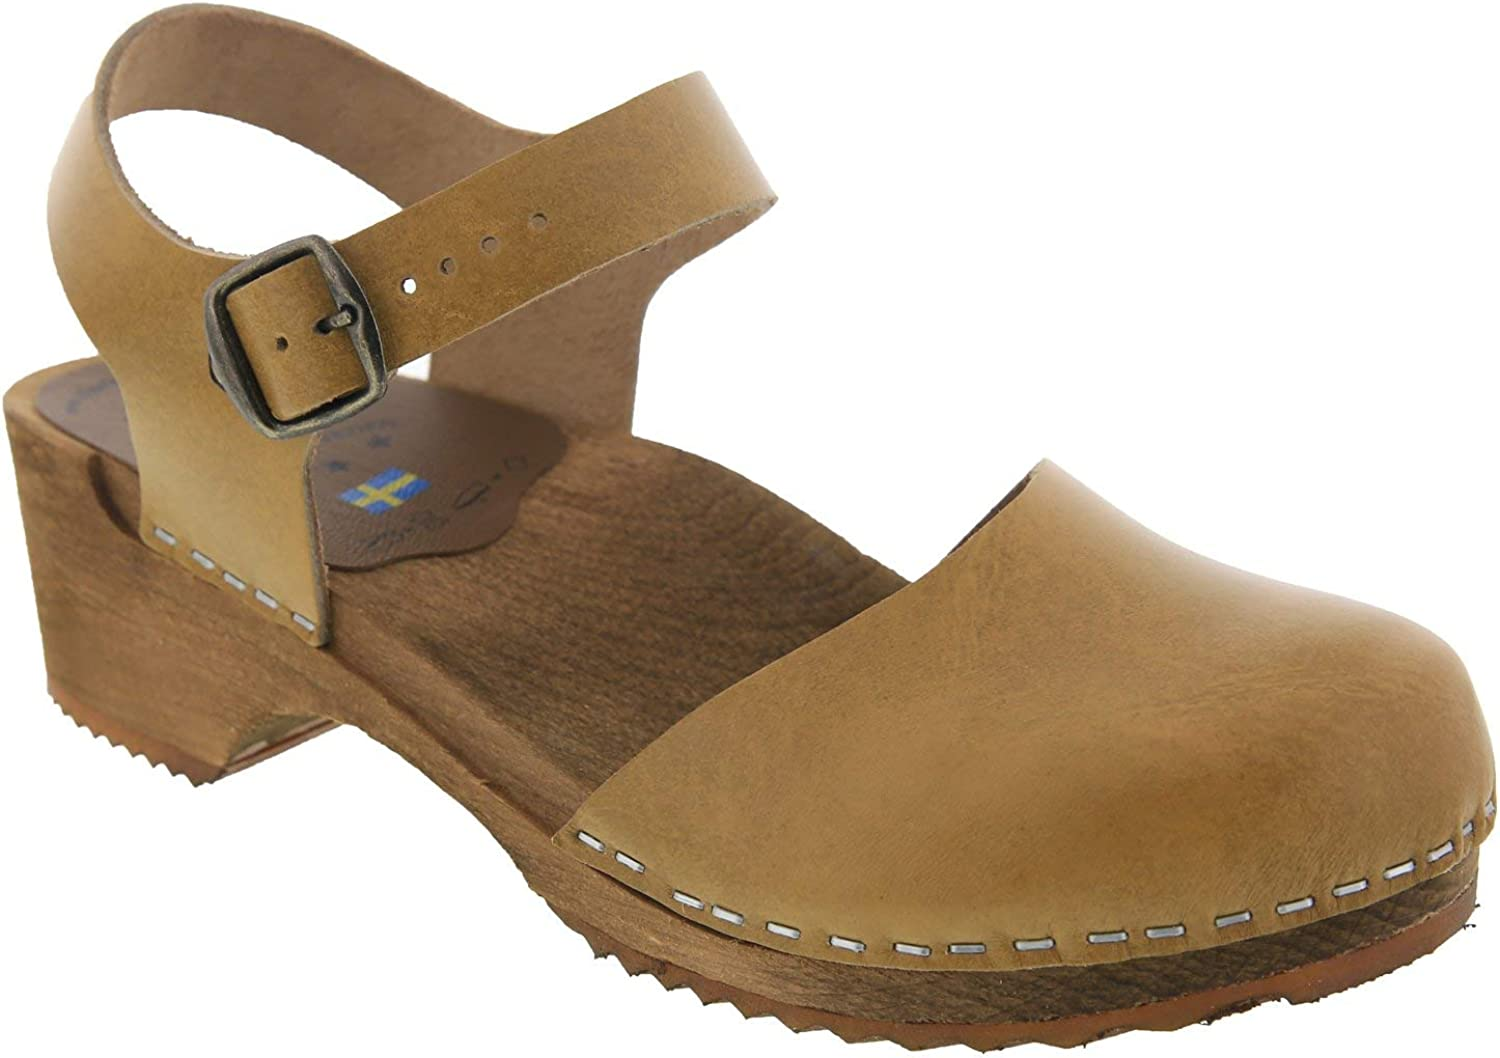 Bjork Alma Swedish Low Heel Wooden Clog Sandals in Vegetable Tanned Mustard Leather